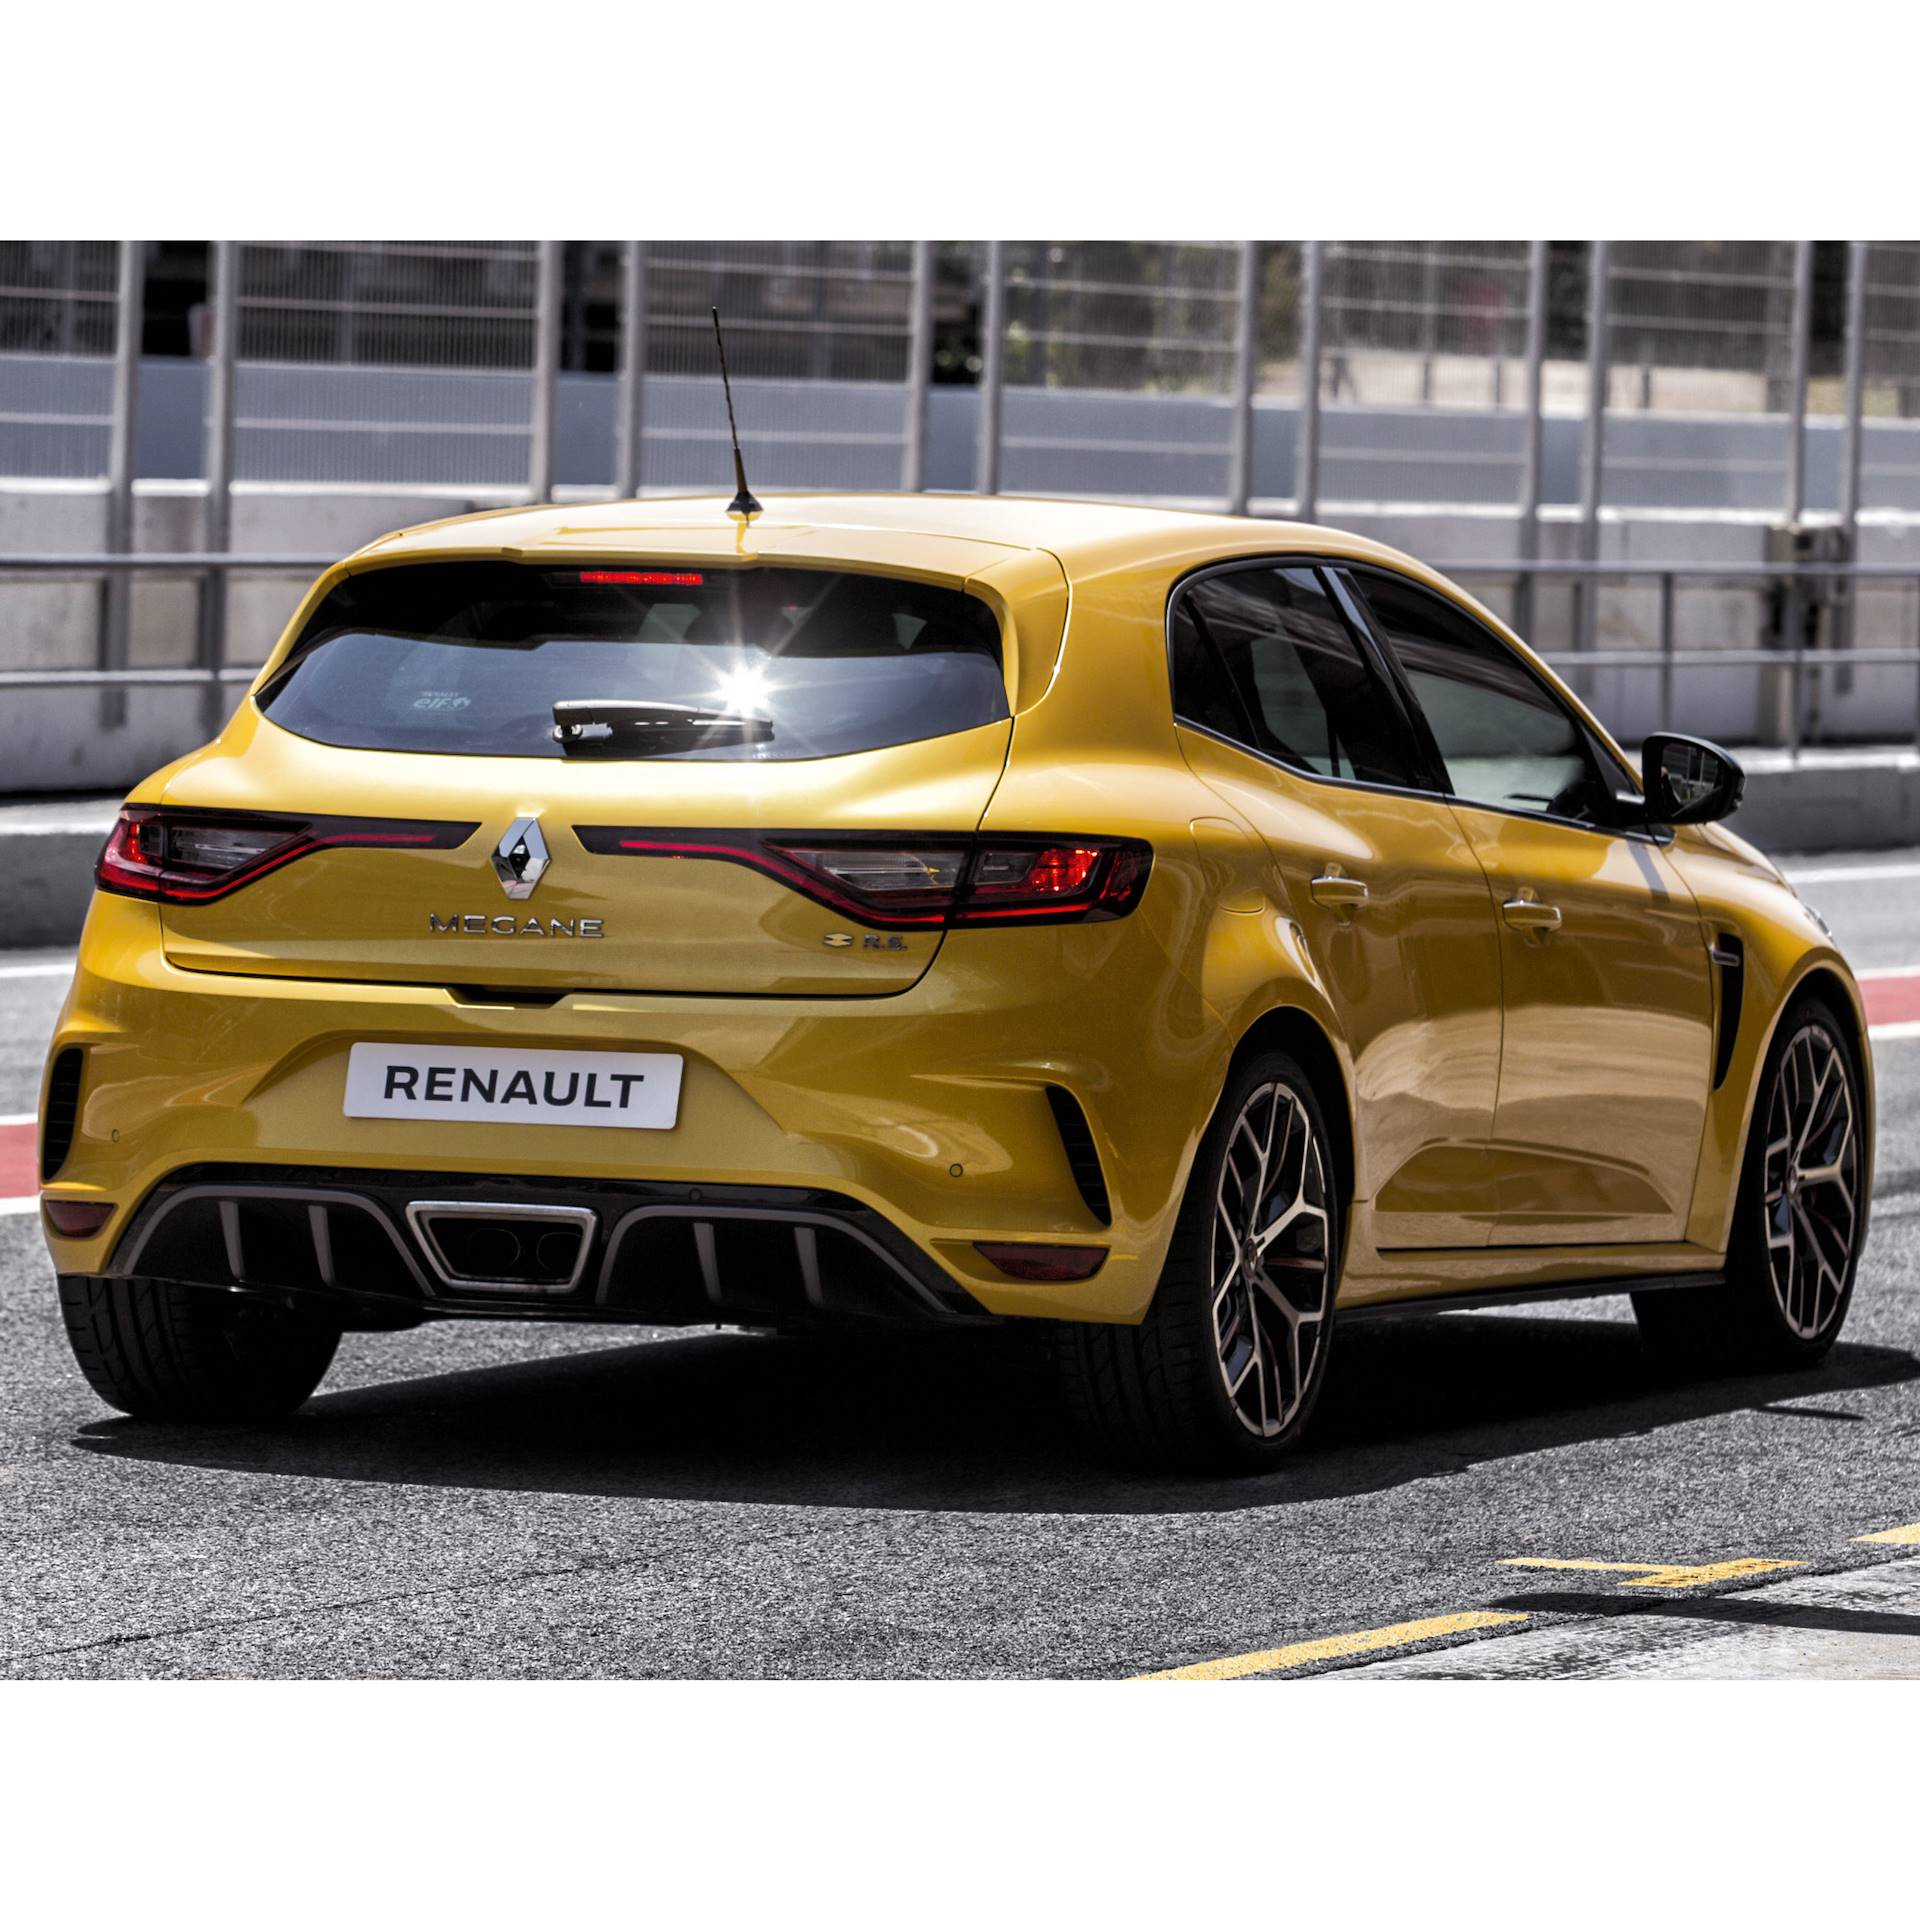 Performance Sport Exhaust For Renault Megane 4 R S Trophy Renault Megane Iv 1 8t R S Trophy 300 Hp 2019 Renault Exhaust Systems